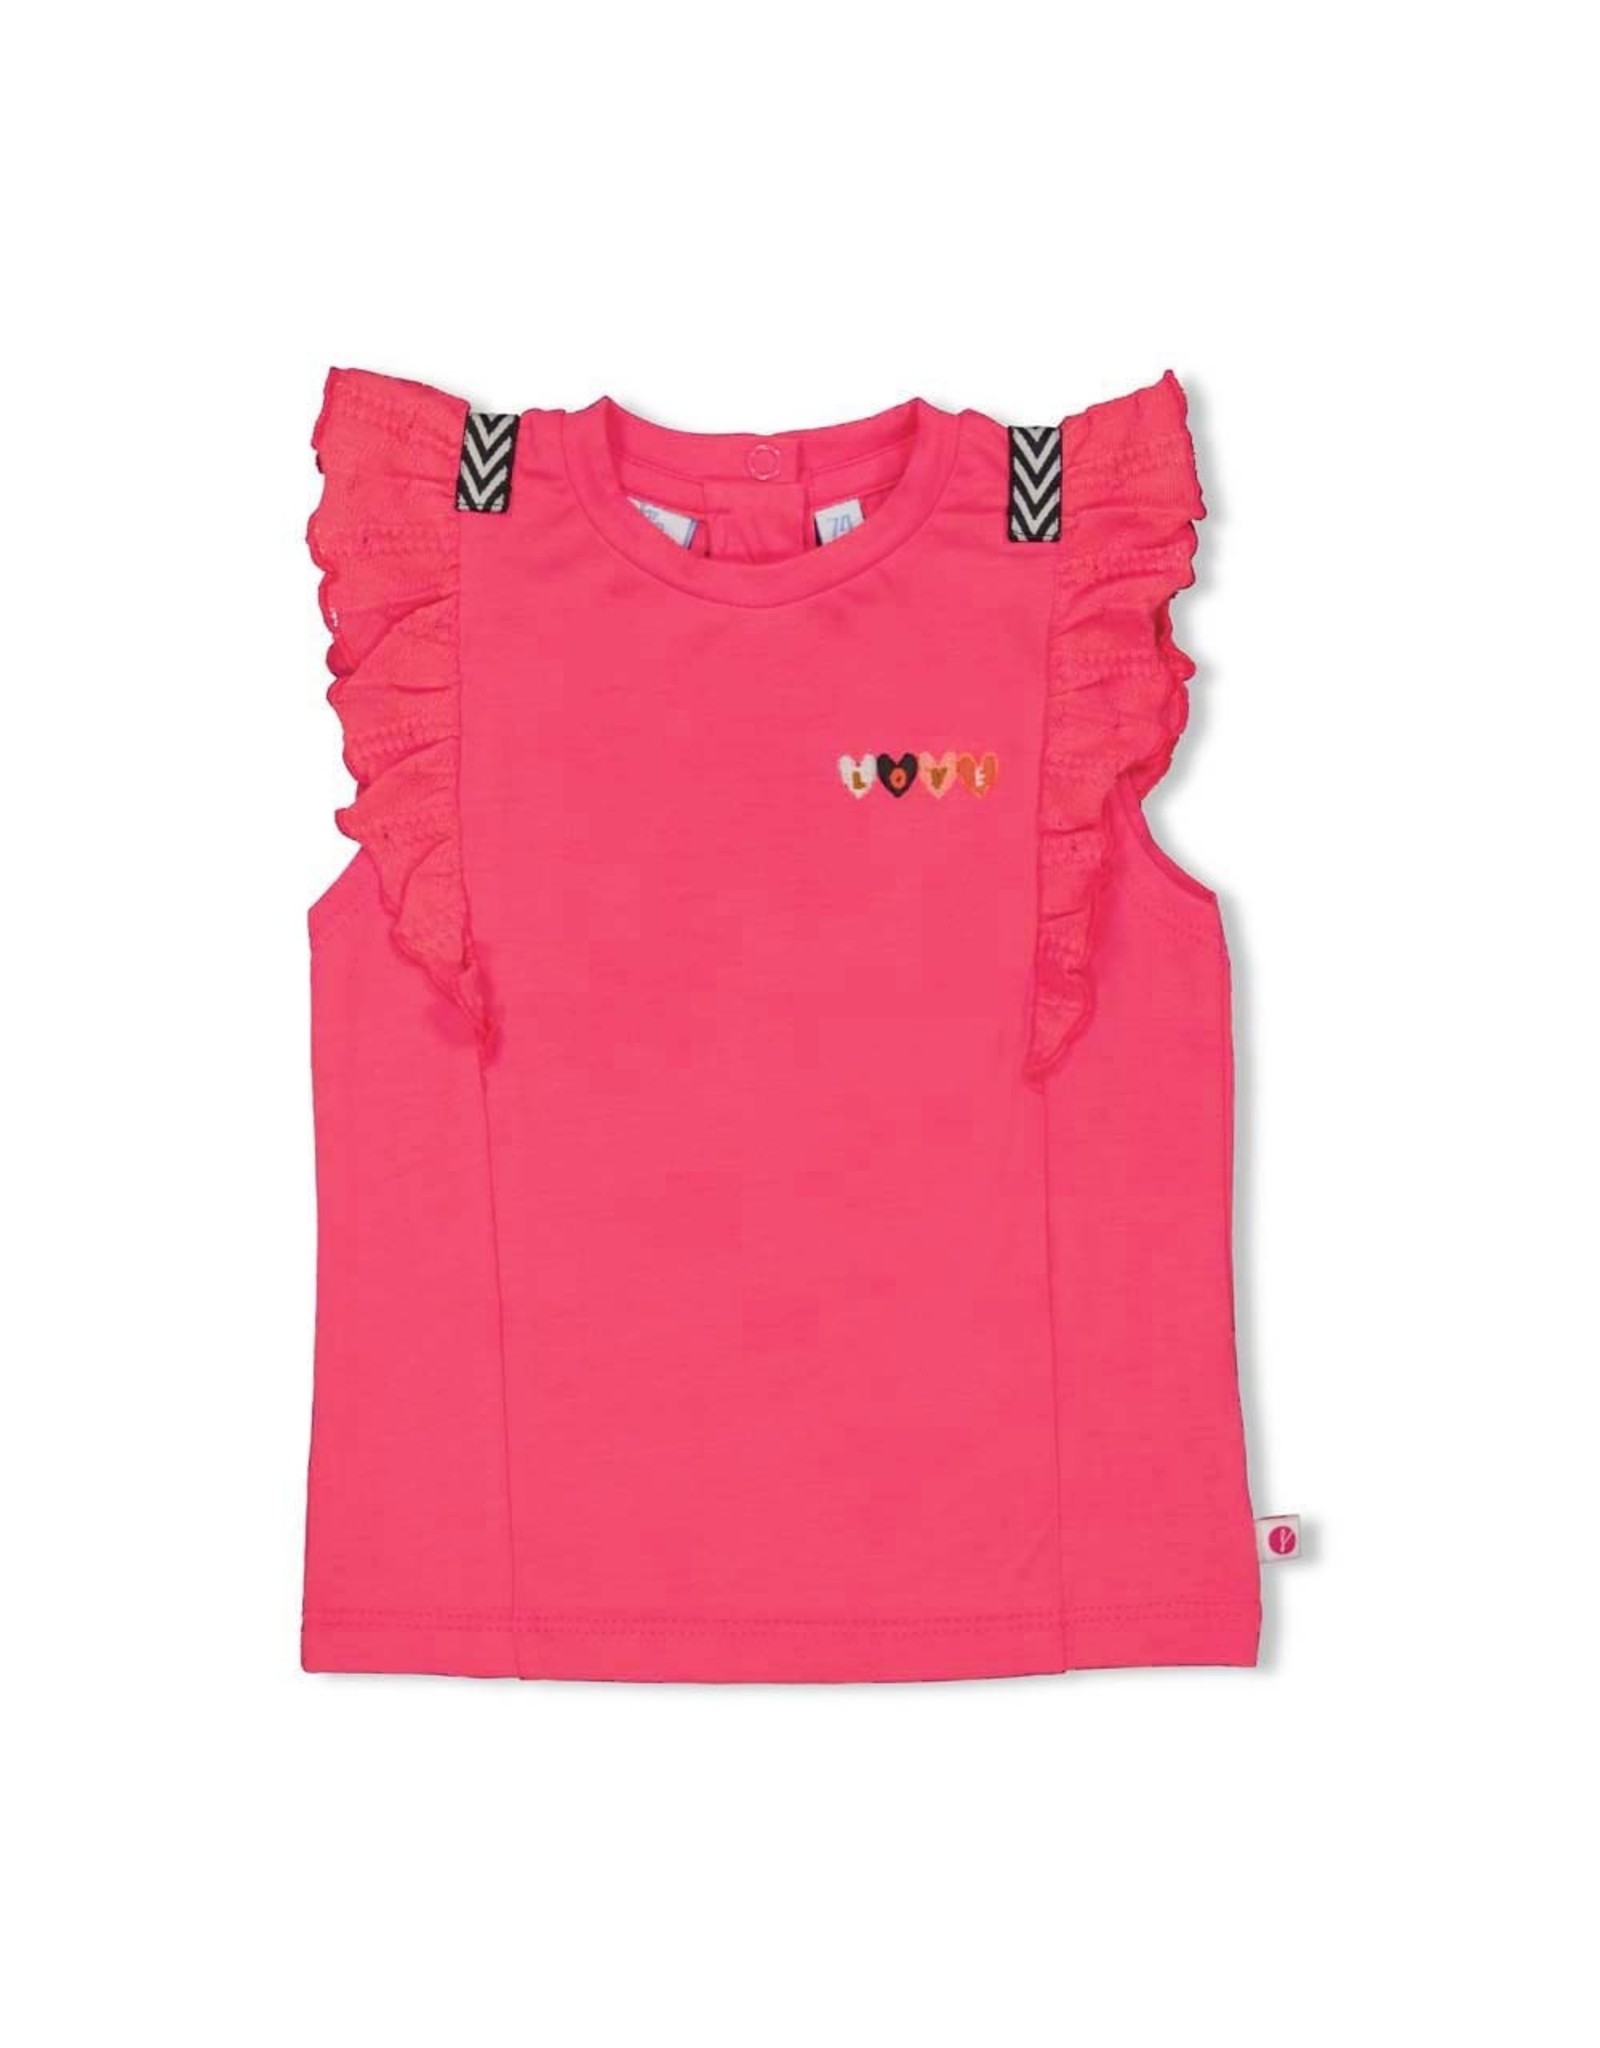 Feetje T-shirt rusches - Whoopsie Daisy